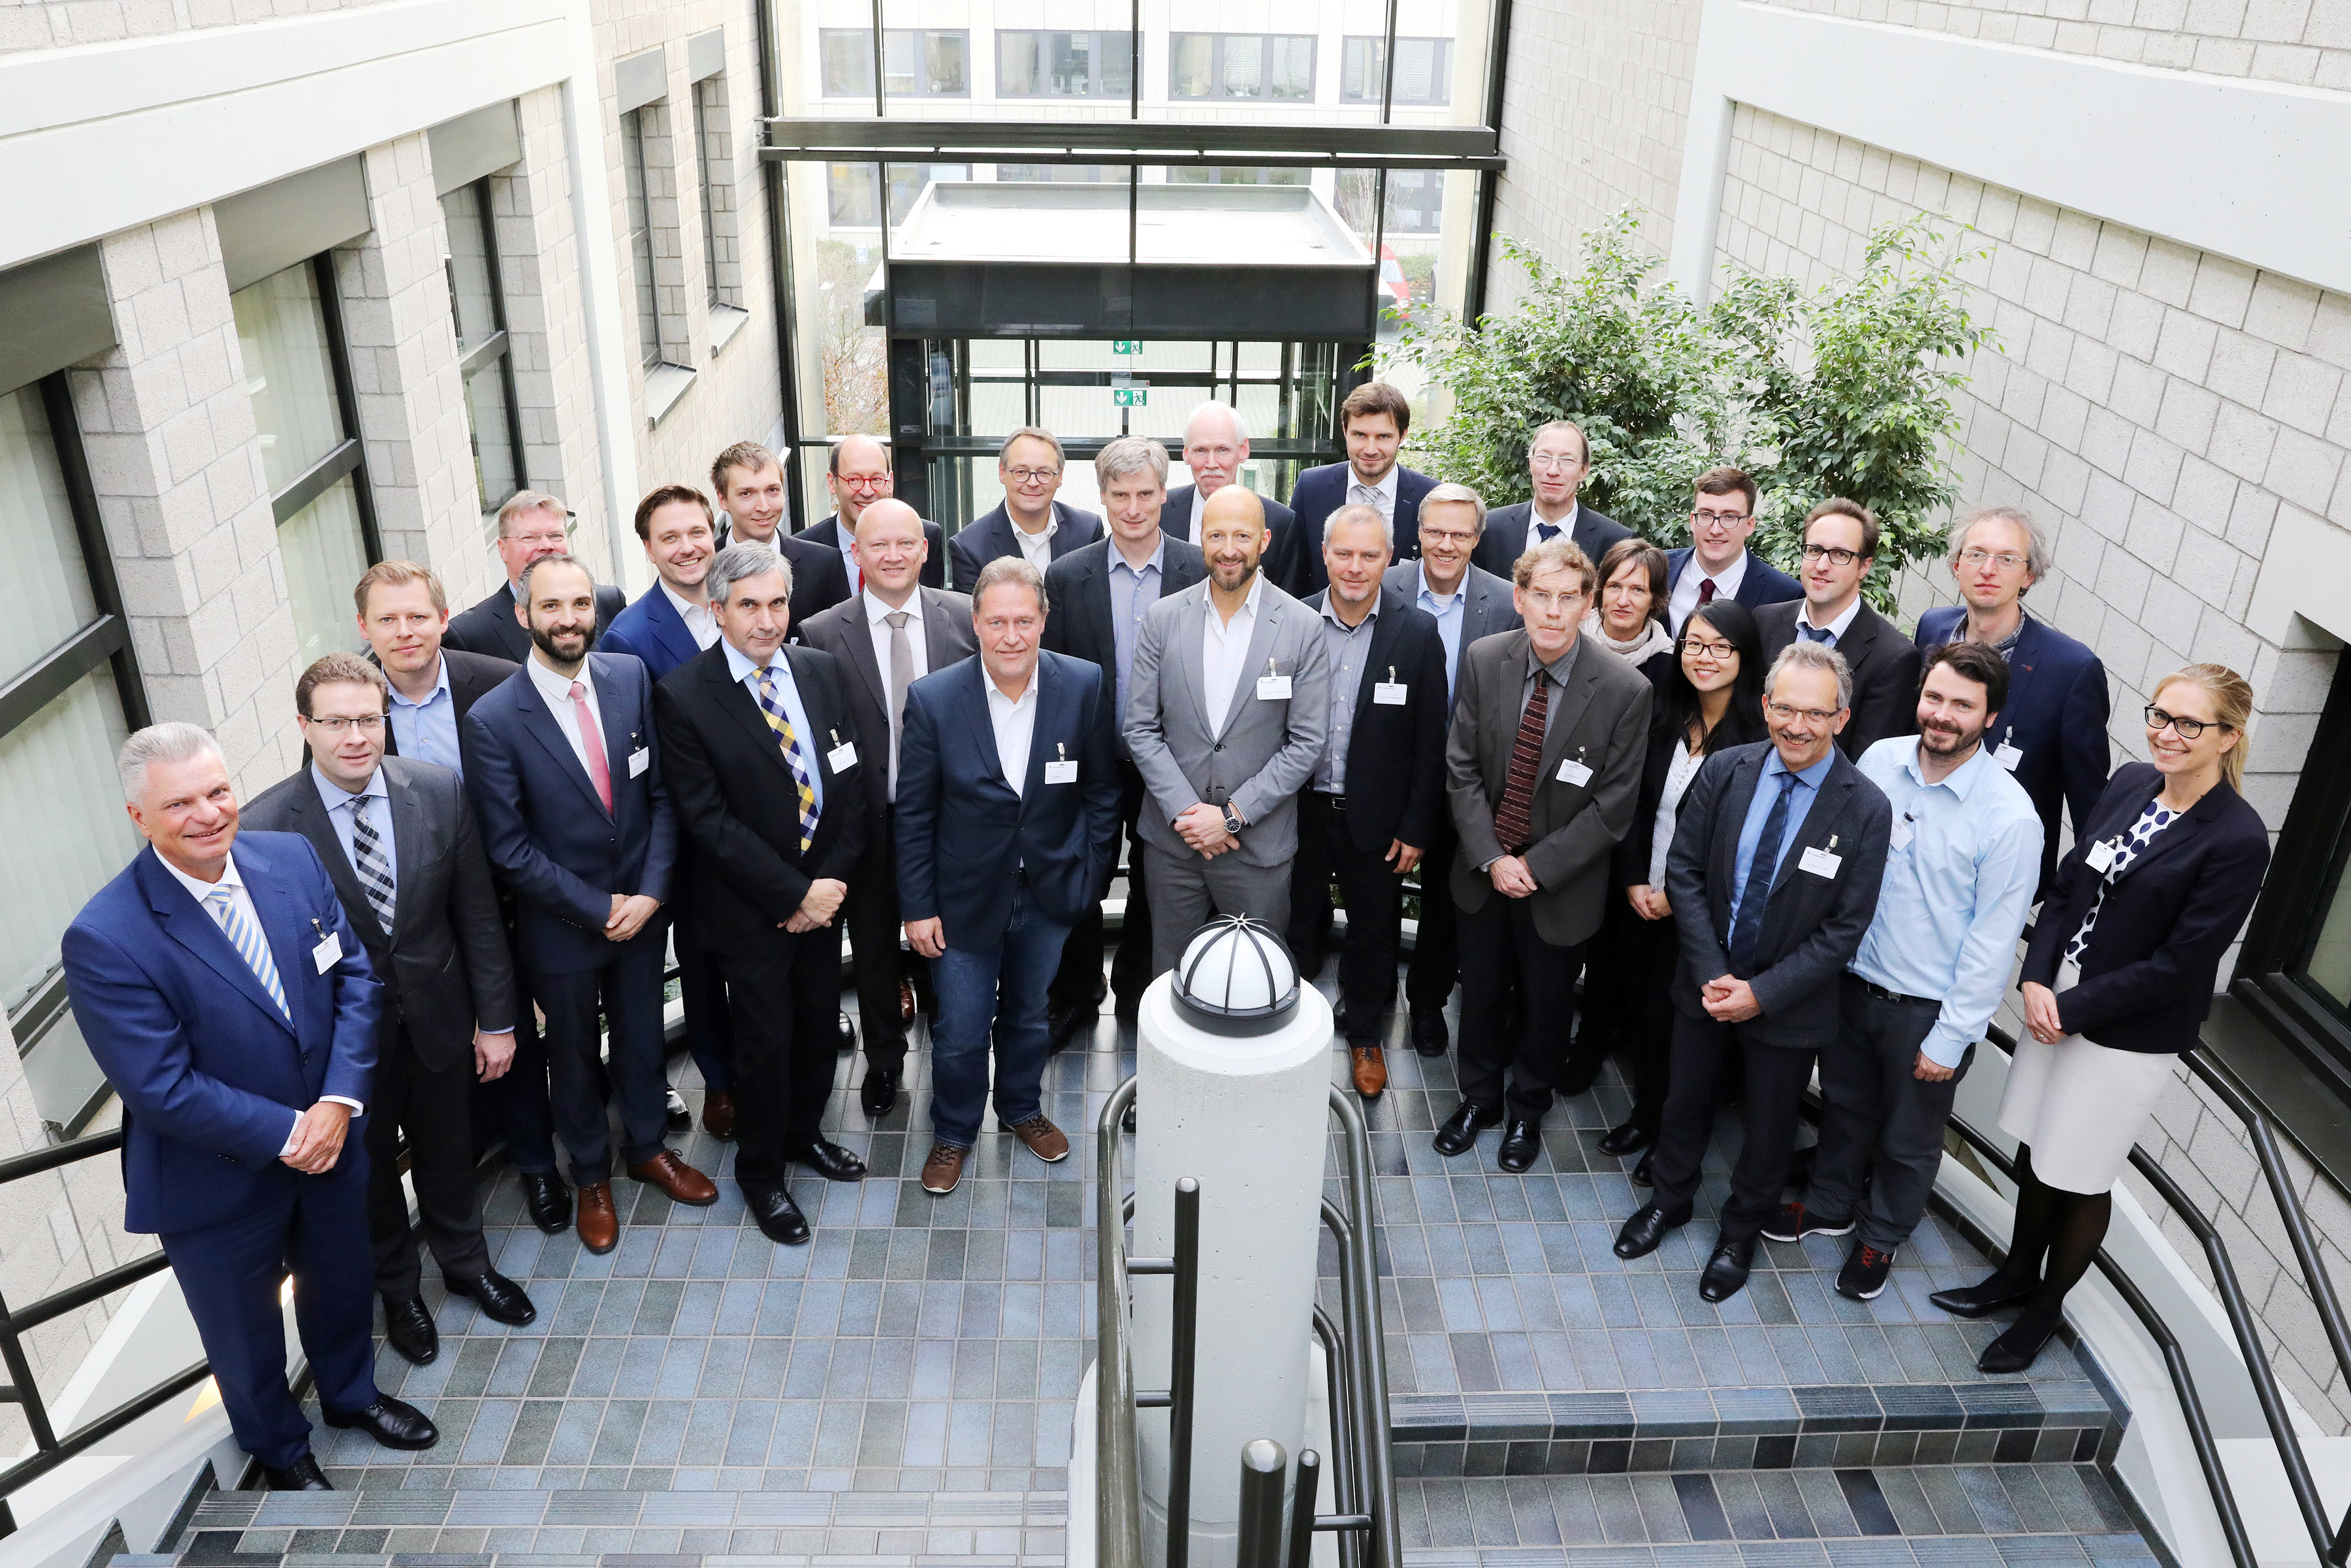 Partners from industry and science met on Nov. 14, 2017 for the kick-off of the Fraunhofer futureAM focus project in Aachen.